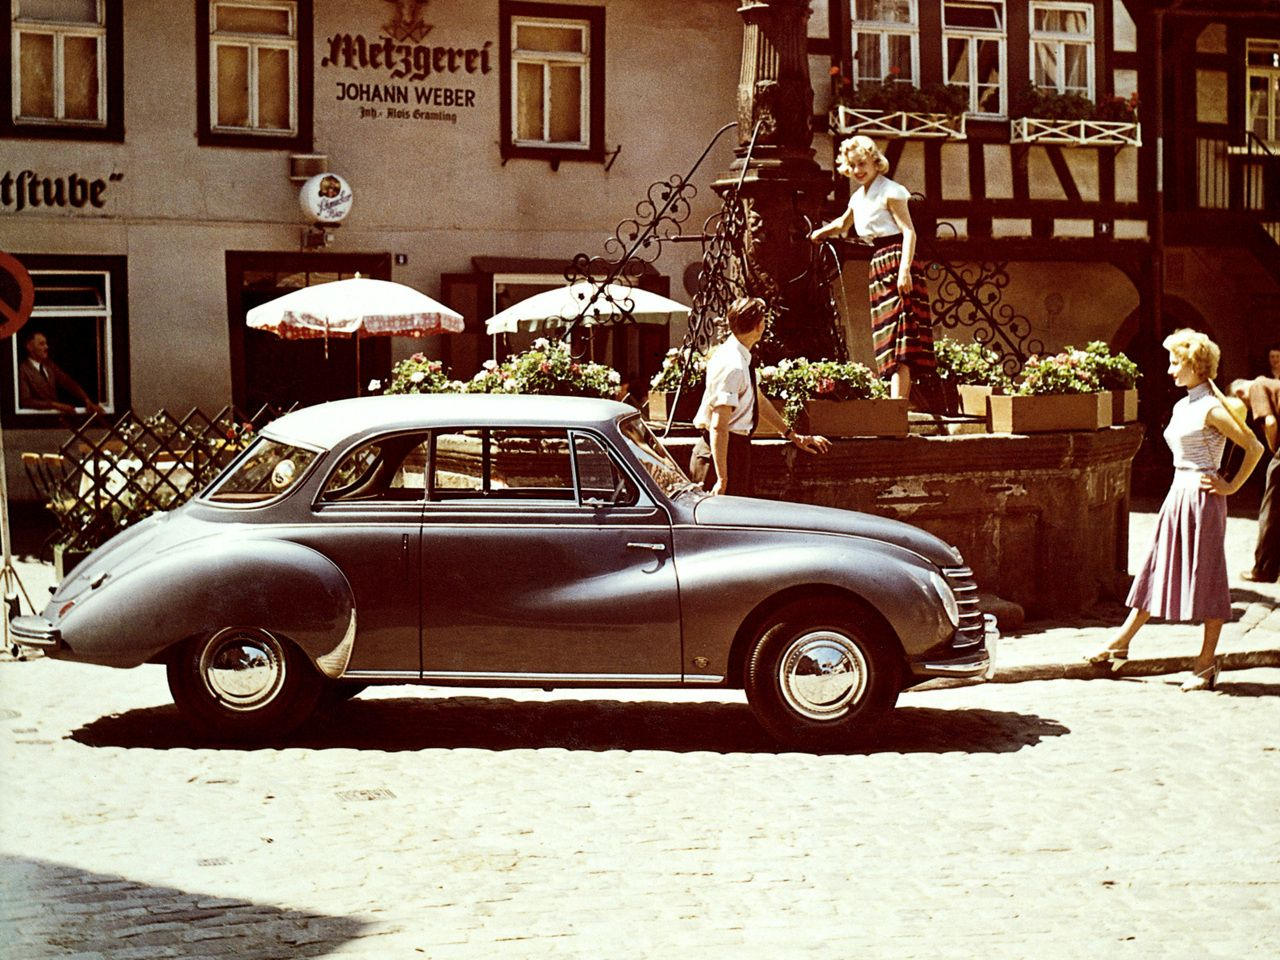 1950s nostalic Auto Union photo, much in the same style and mood of ...